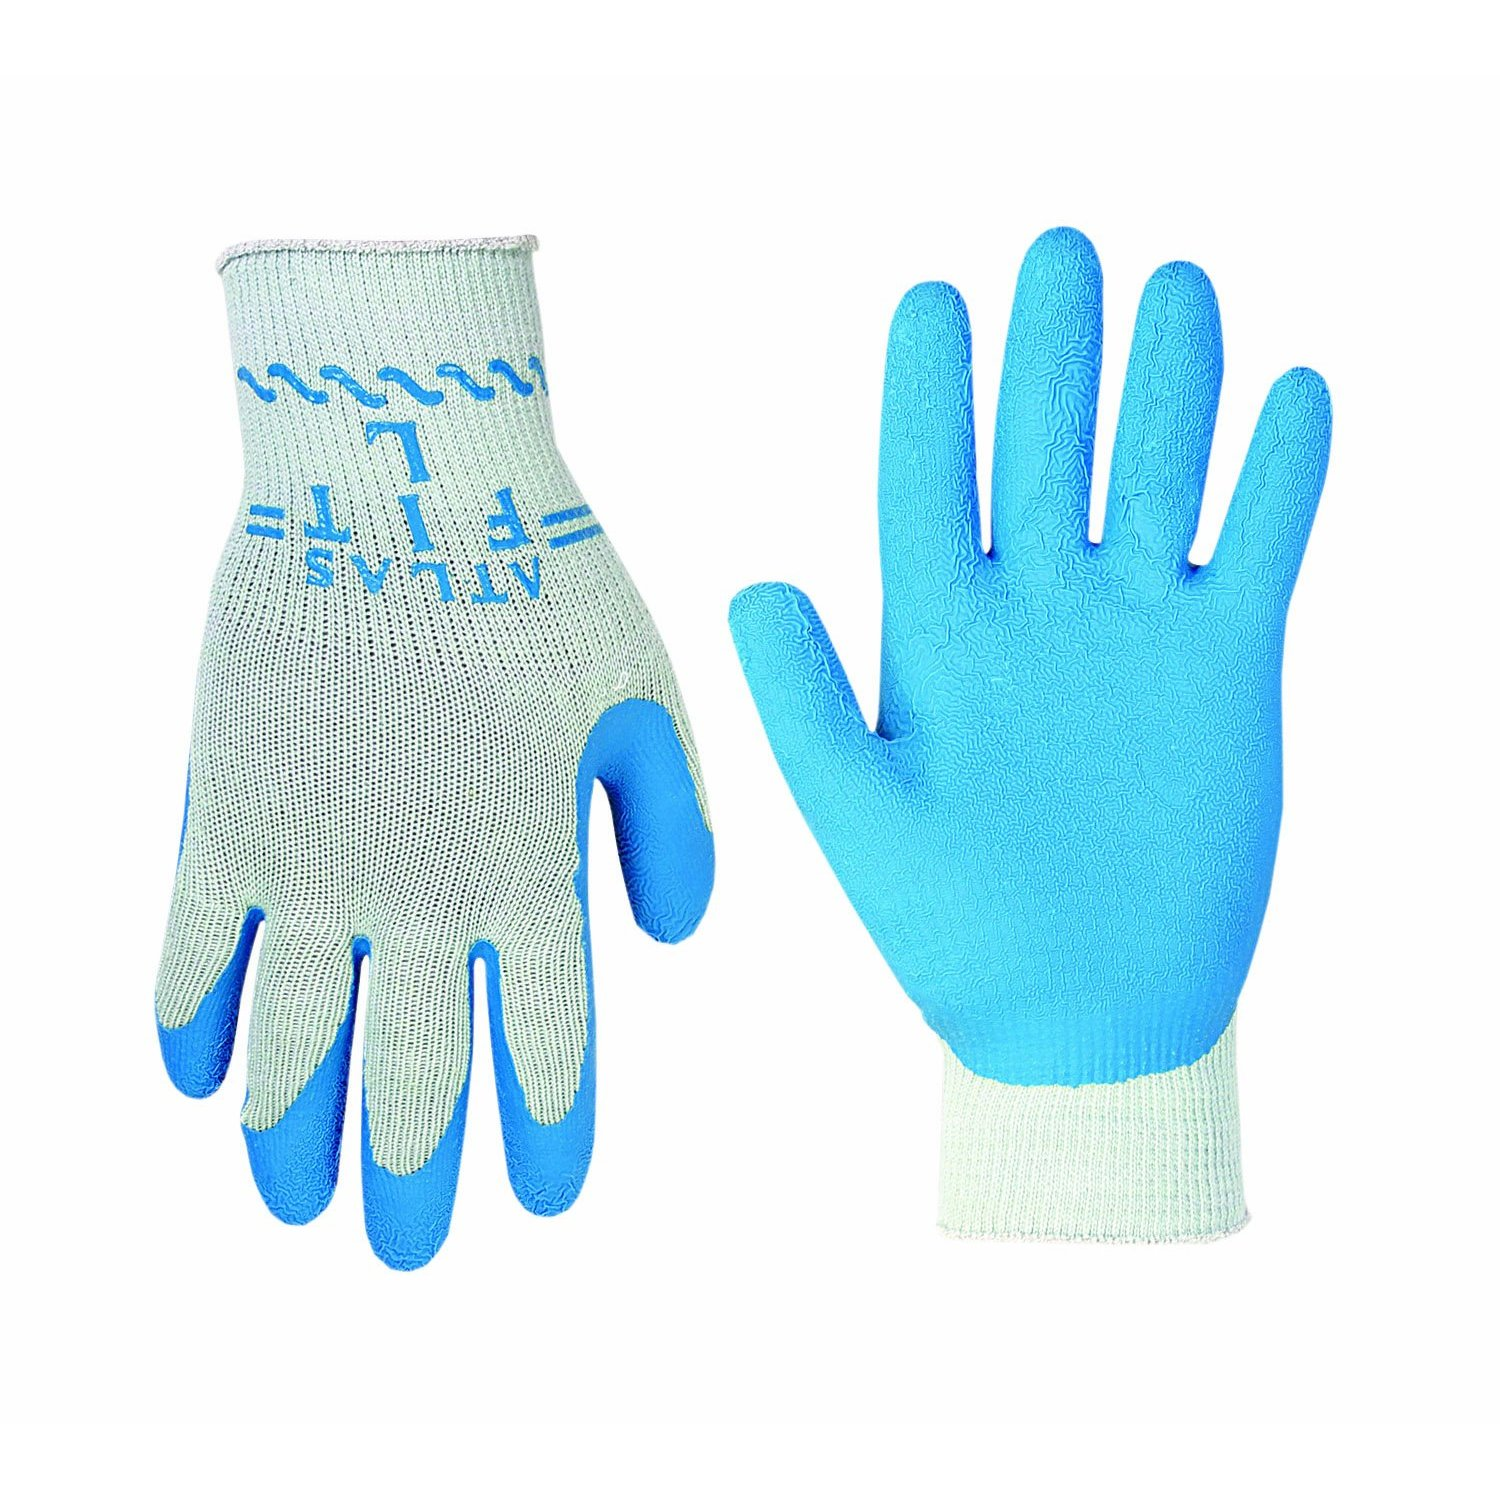 Atlas 300S Atlas Fit 300 Work Gloves, Small [Tools & Home Improvement]